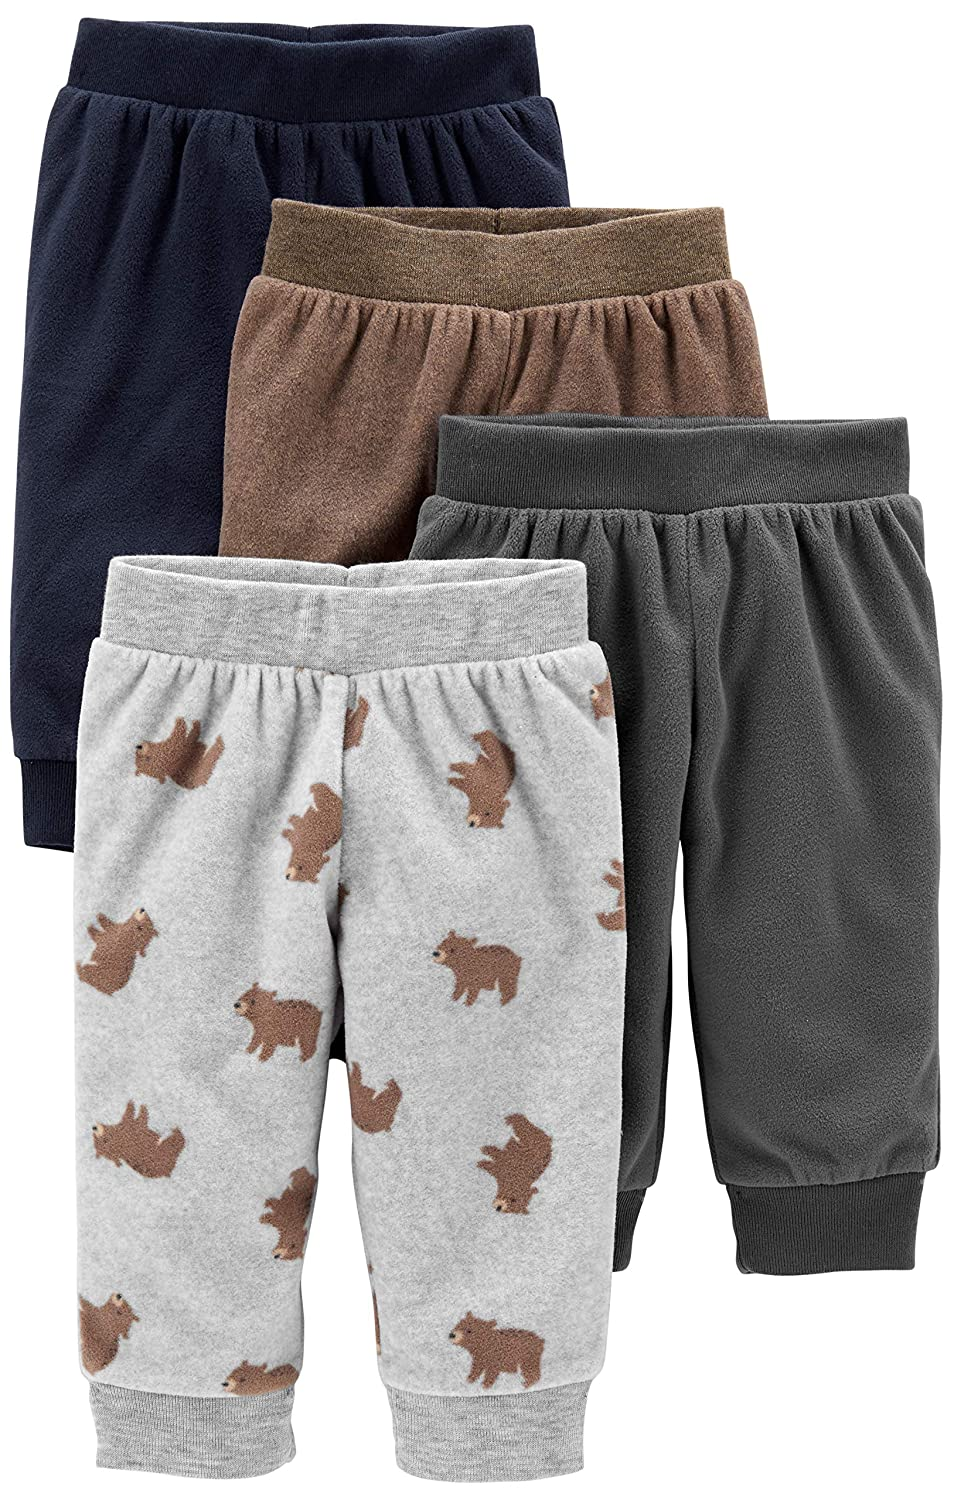 4er-Pack Simple Joys by Carters Baby-Jungen 4-Pack Fleece Pants